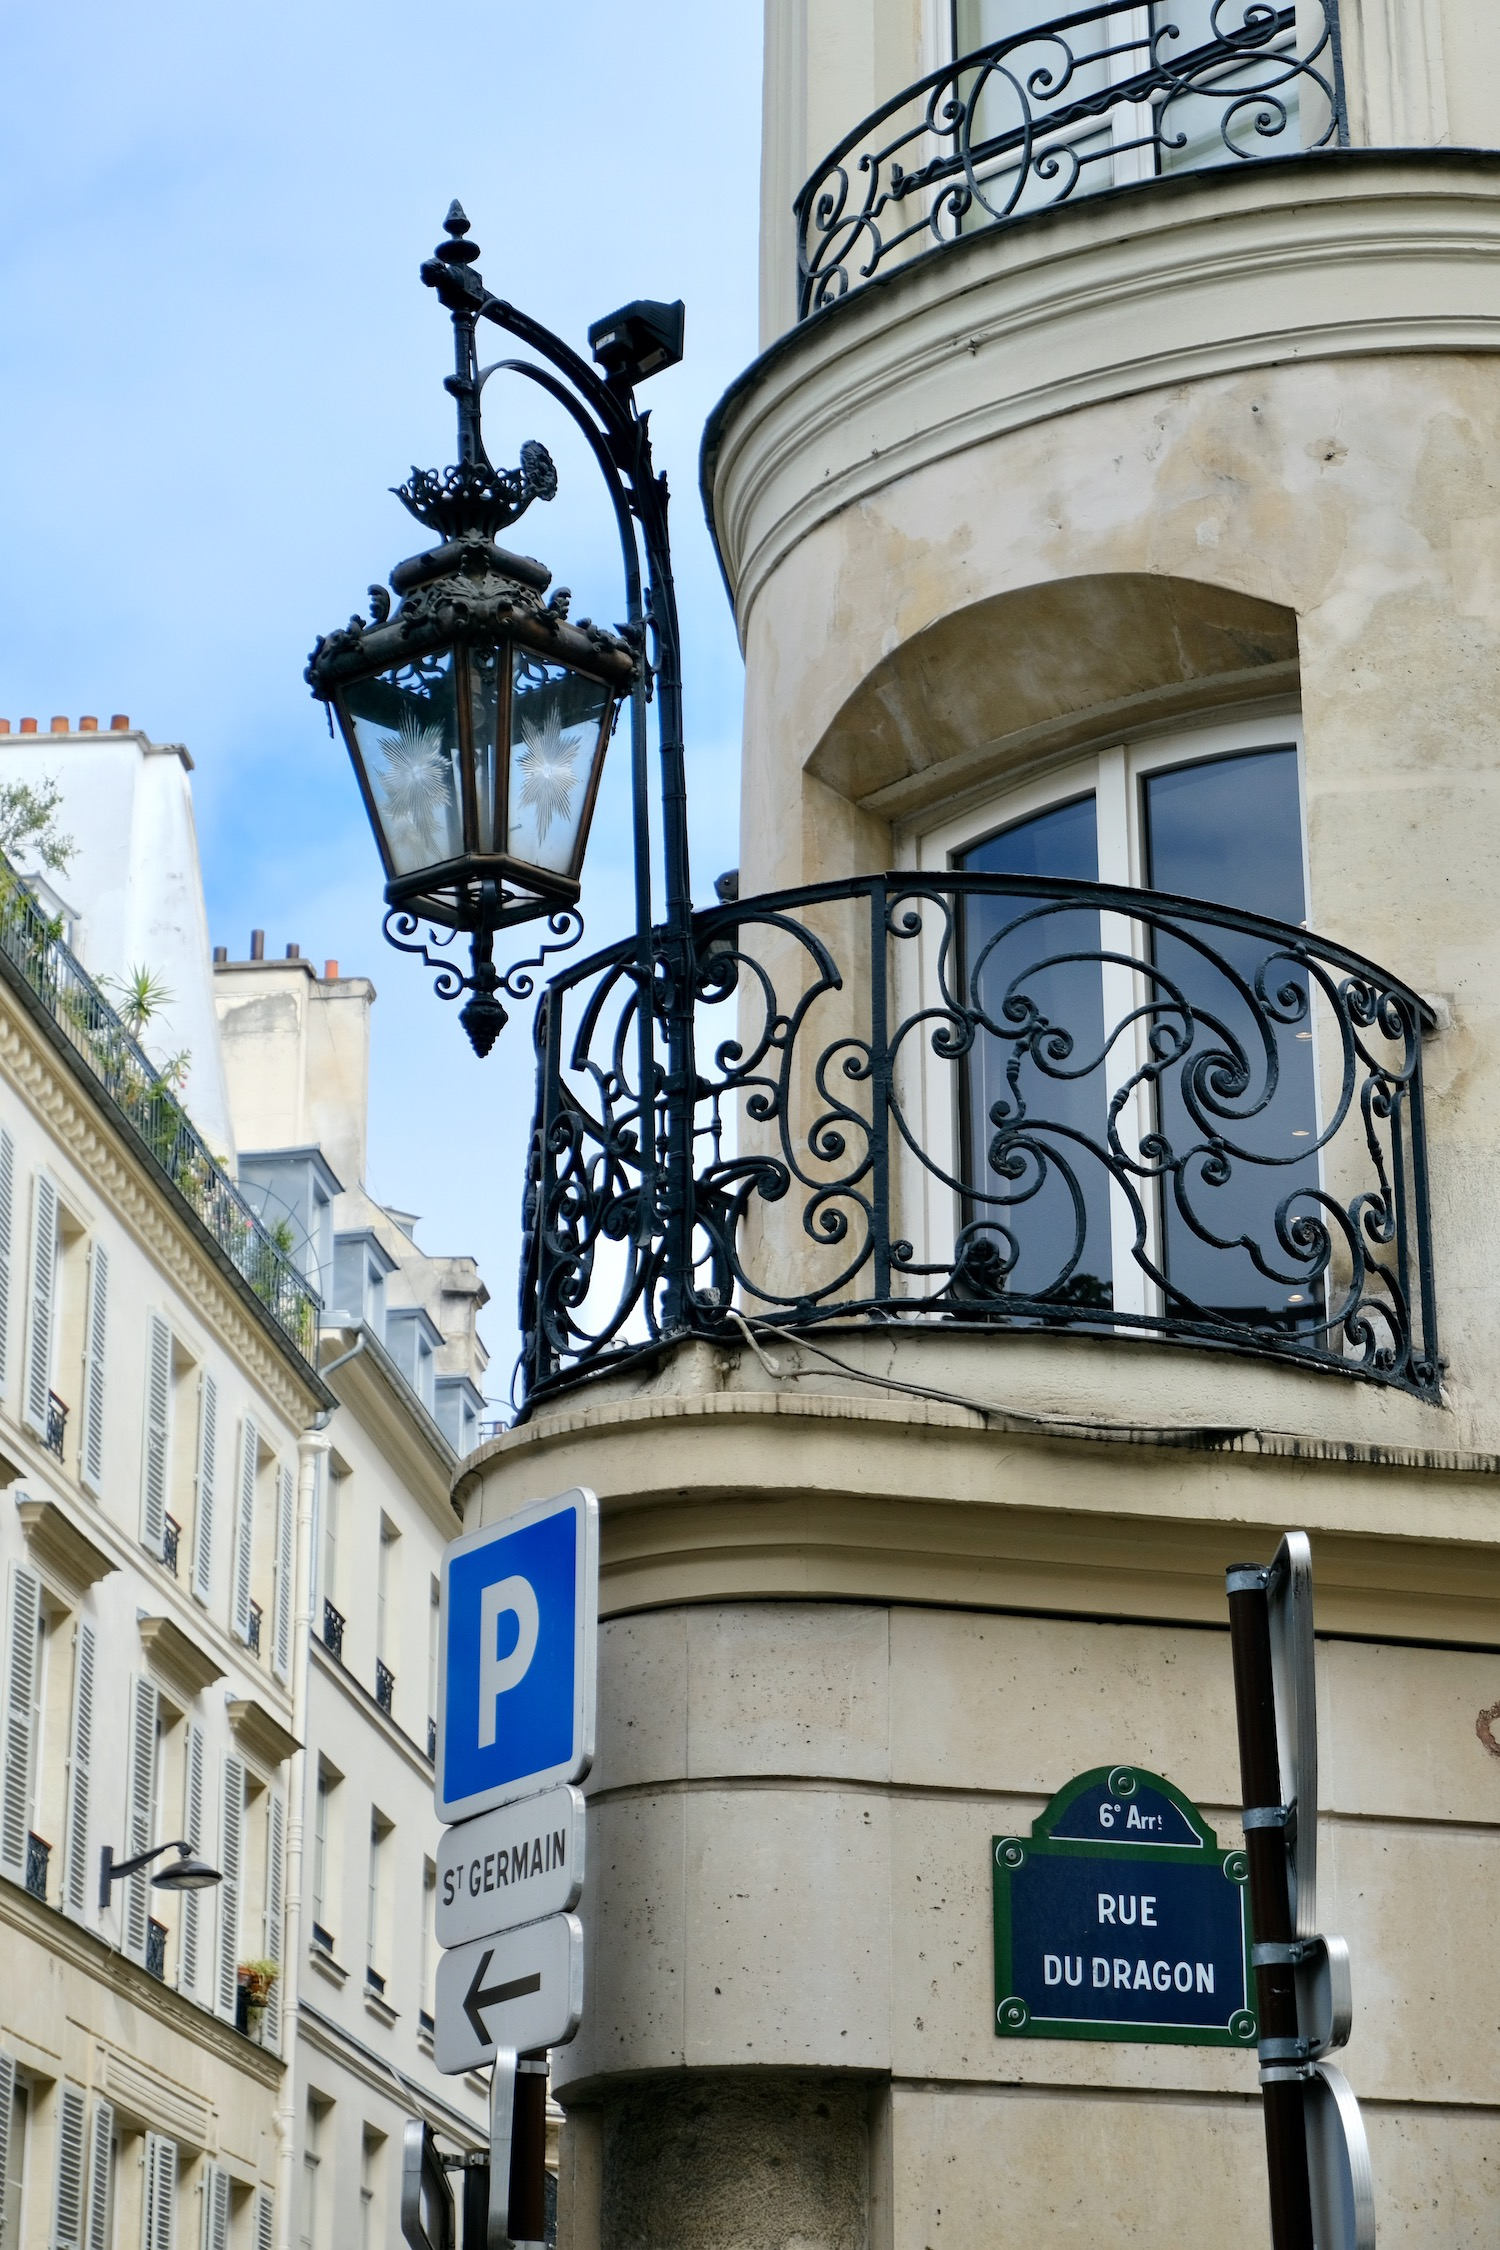 Rue du Dragon balcony